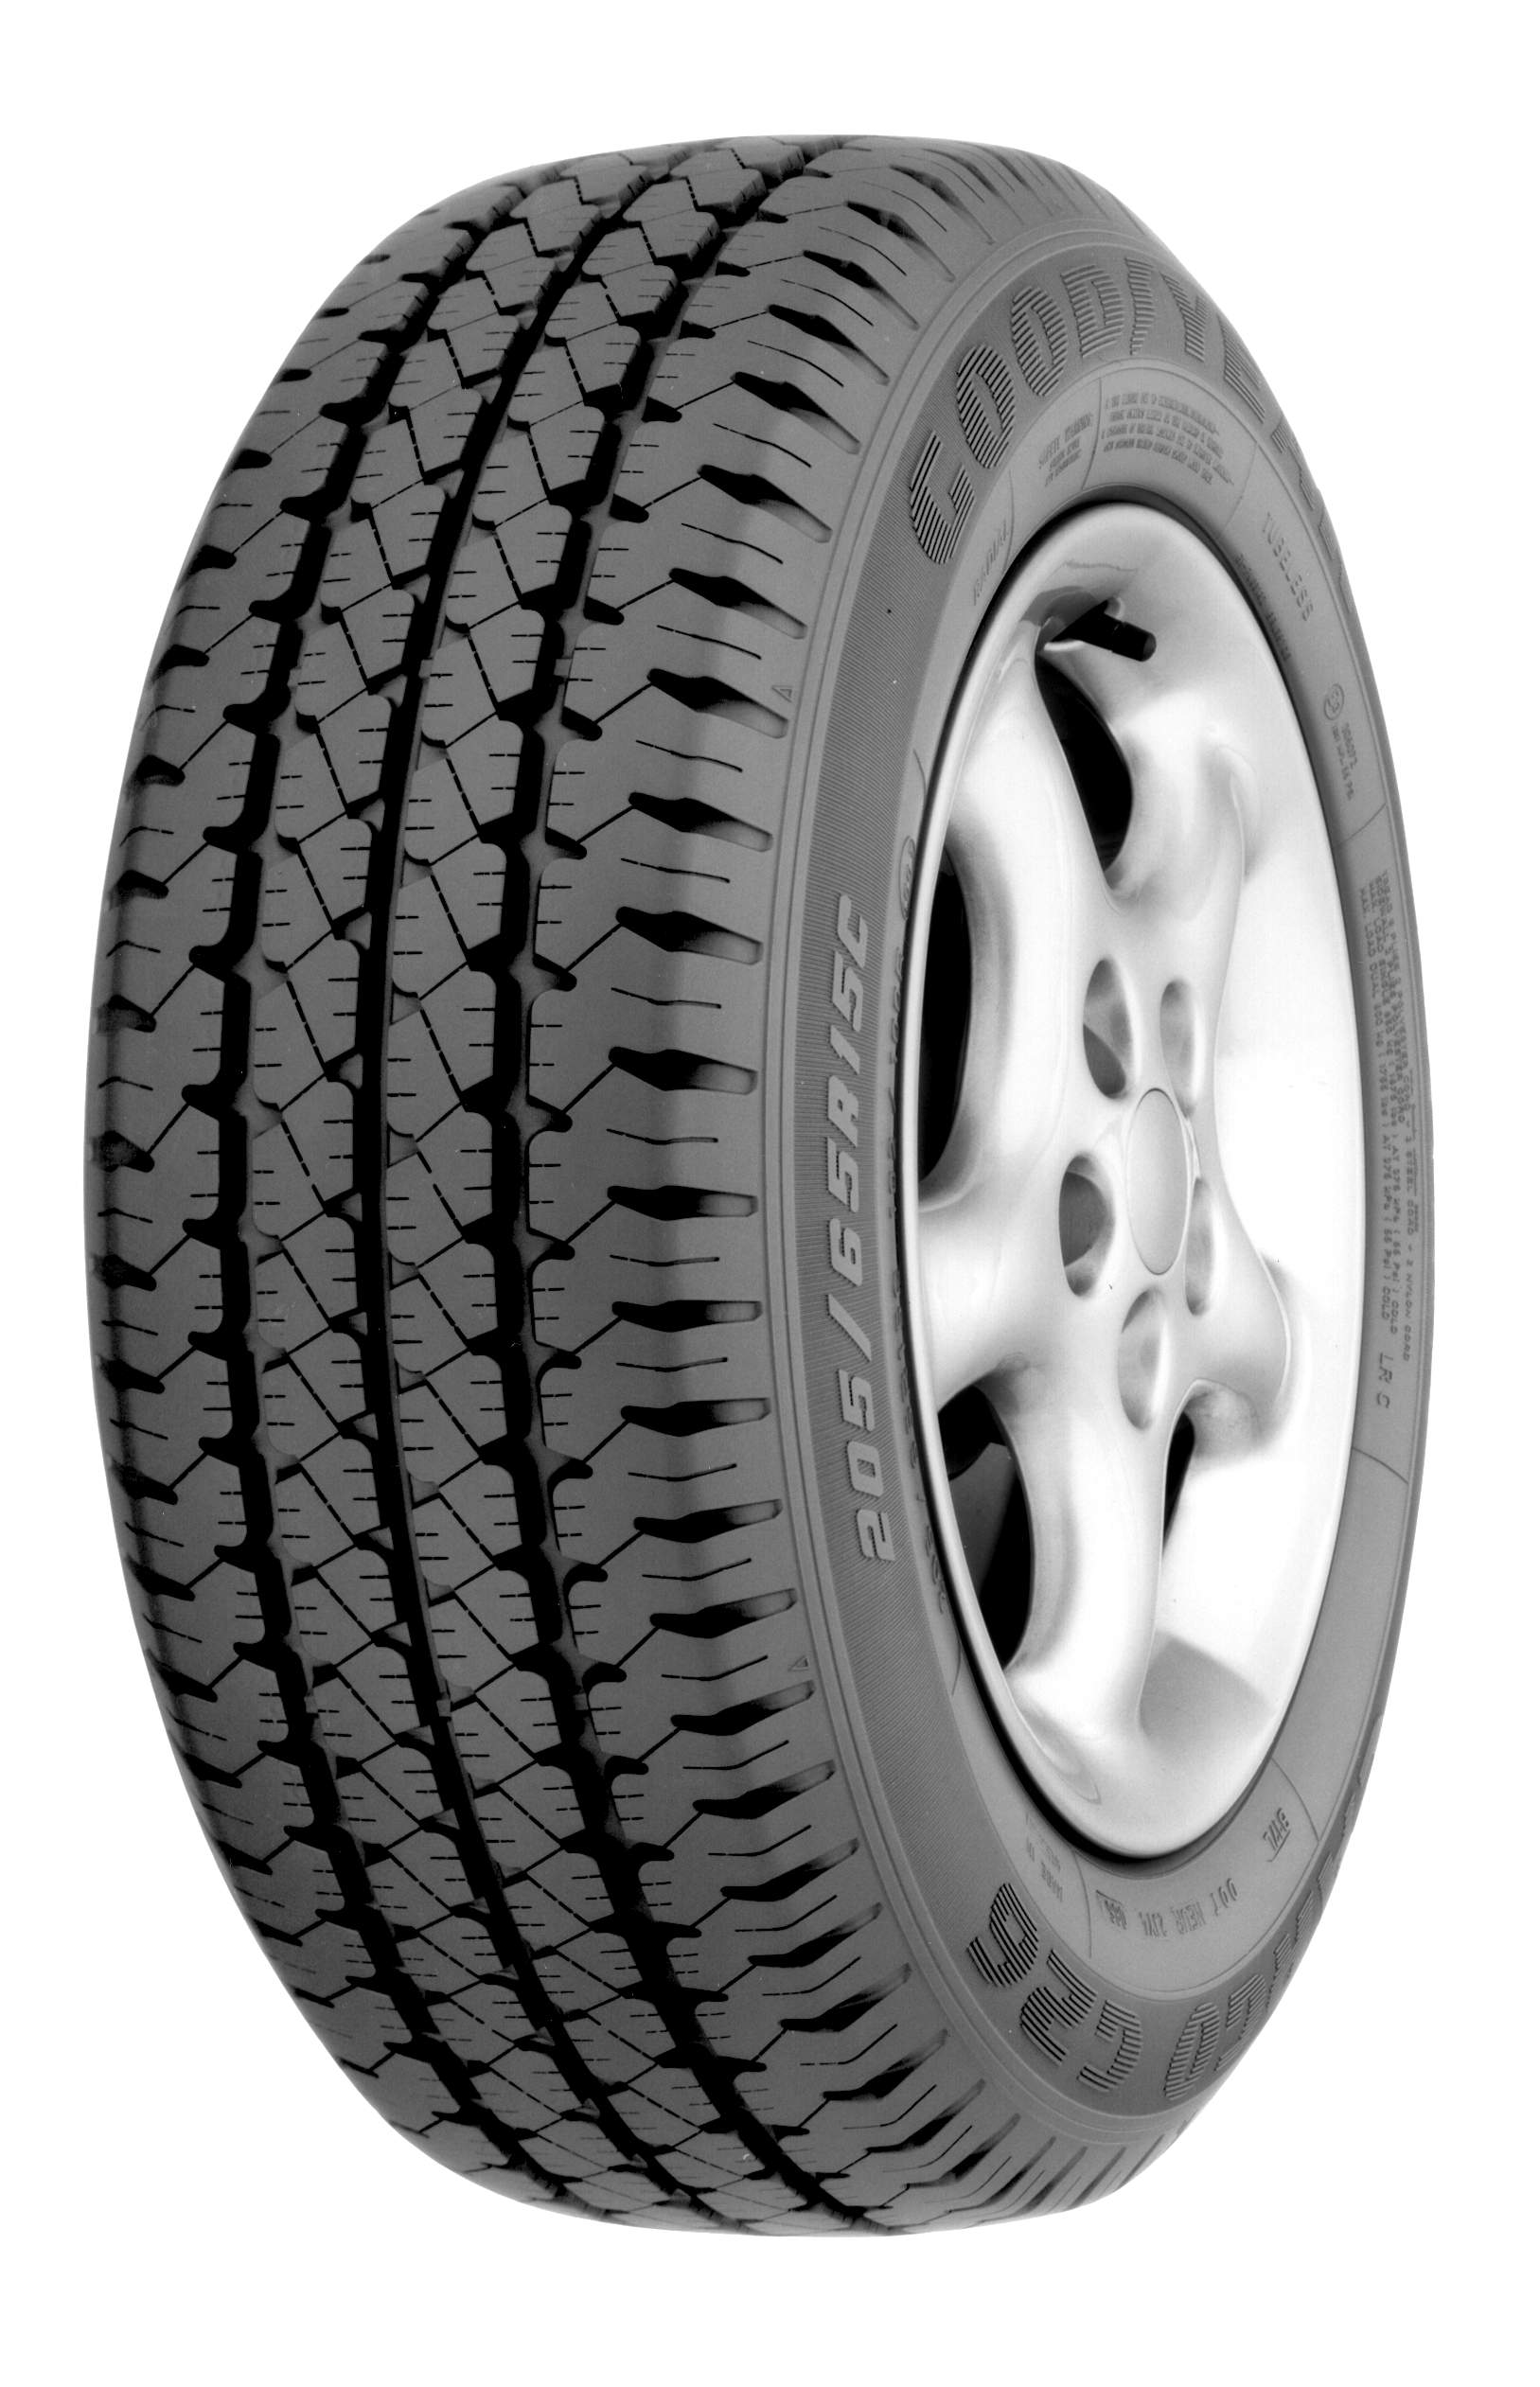 Tire-shot-Cargo-G26-3_4-view-GY-on-top_Original_60157-2